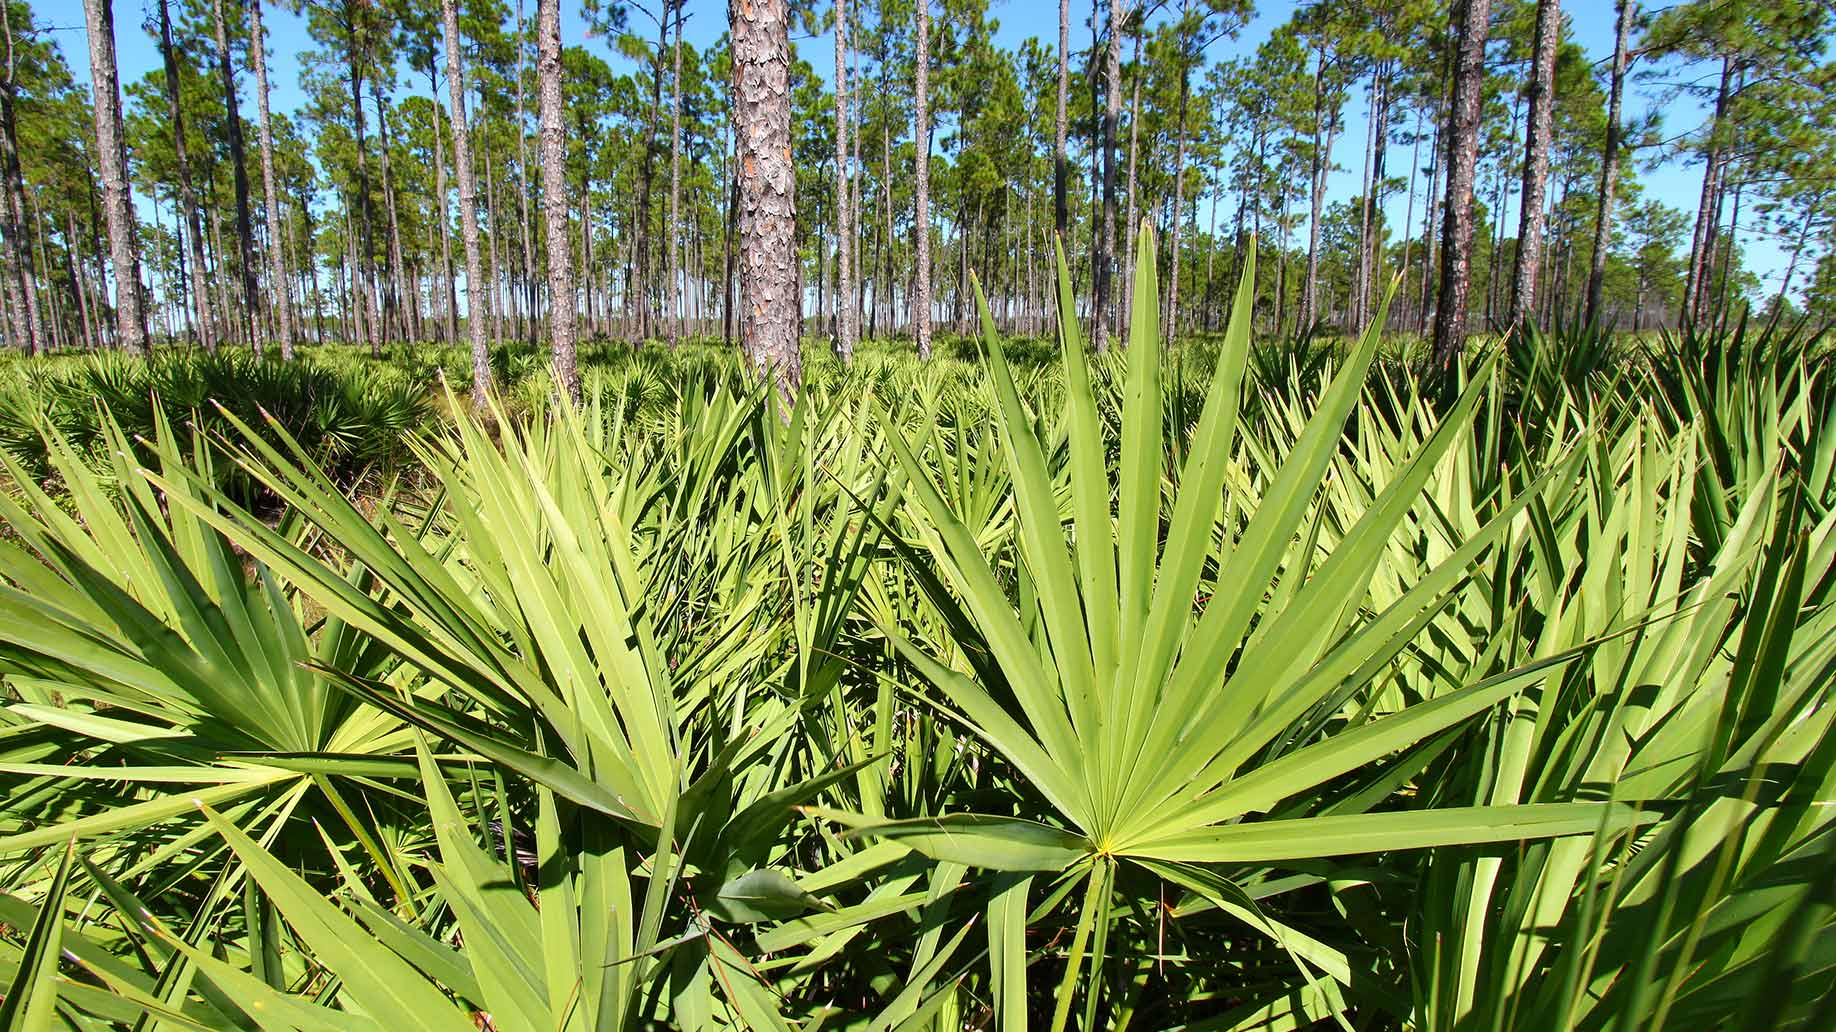 saw palmetto green plant hair loss balding thinning natural remedies